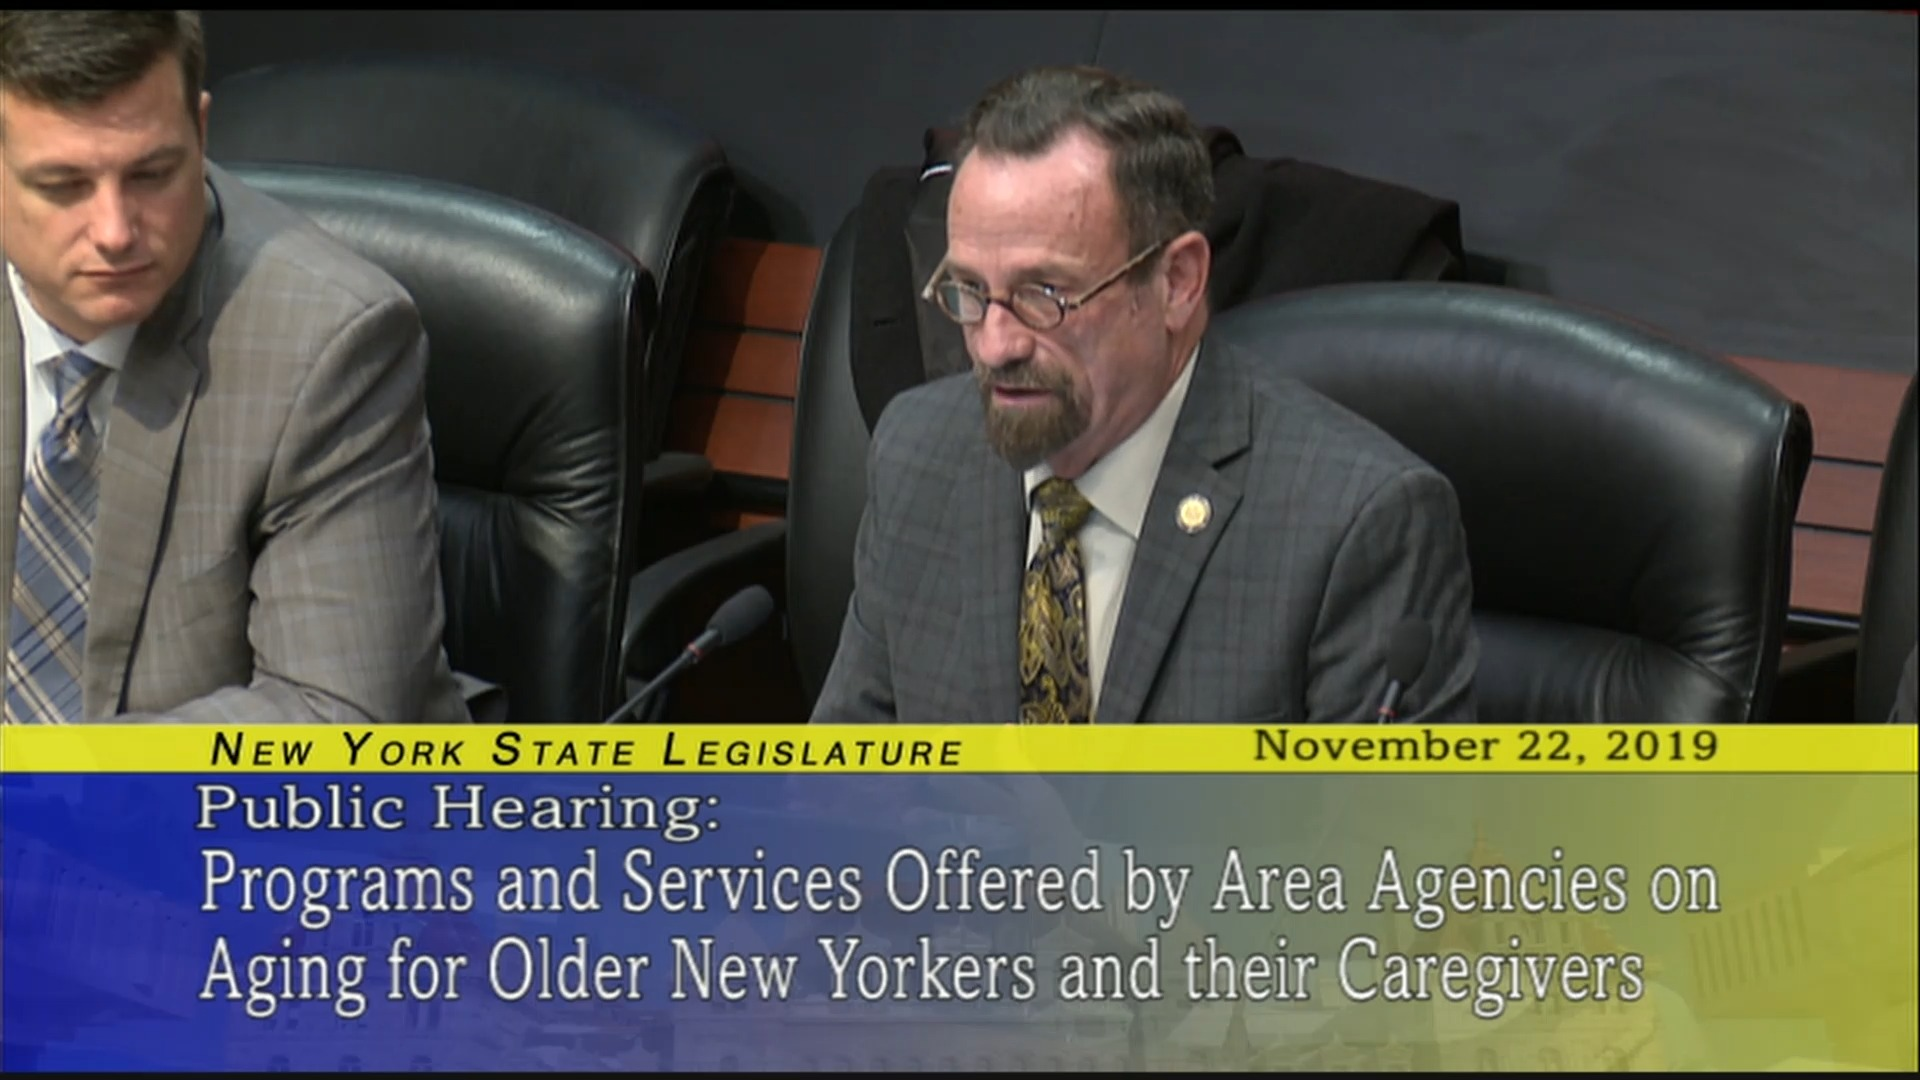 Public Hearing On Programs And Services For Aging New Yorkers (1)